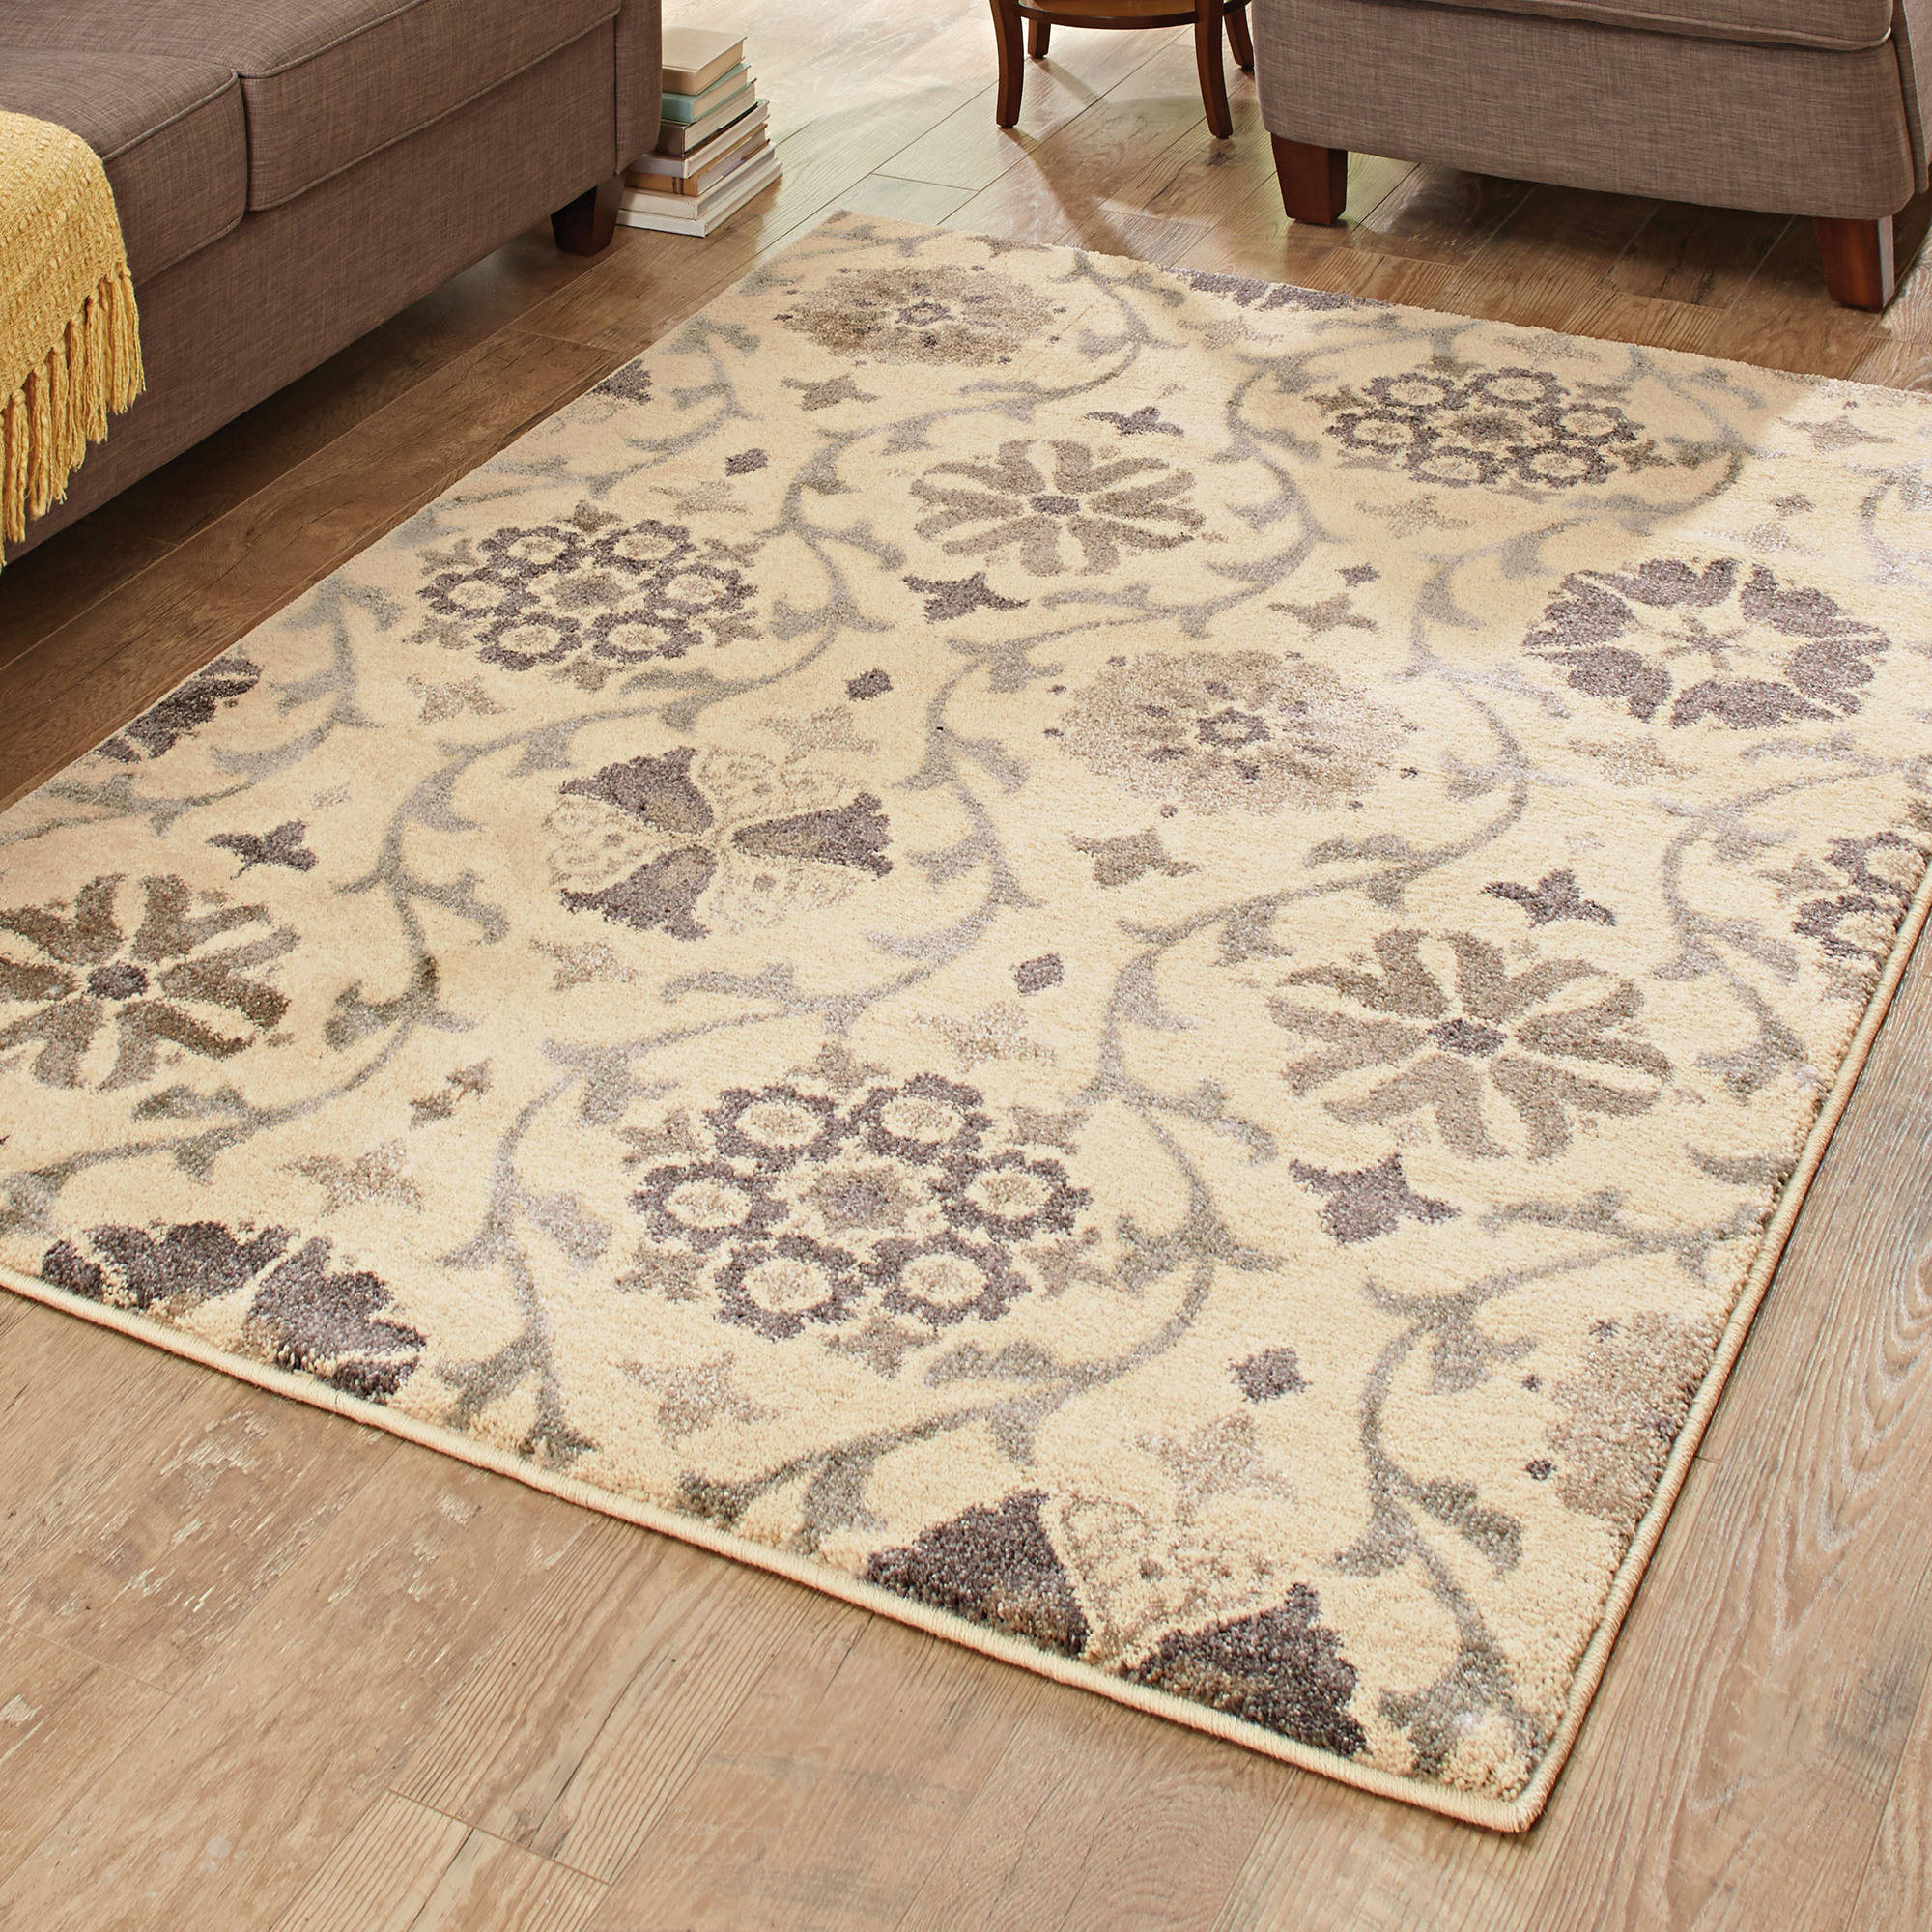 Attractive Better Homes And Gardens Cream Floral Vine Area Rug